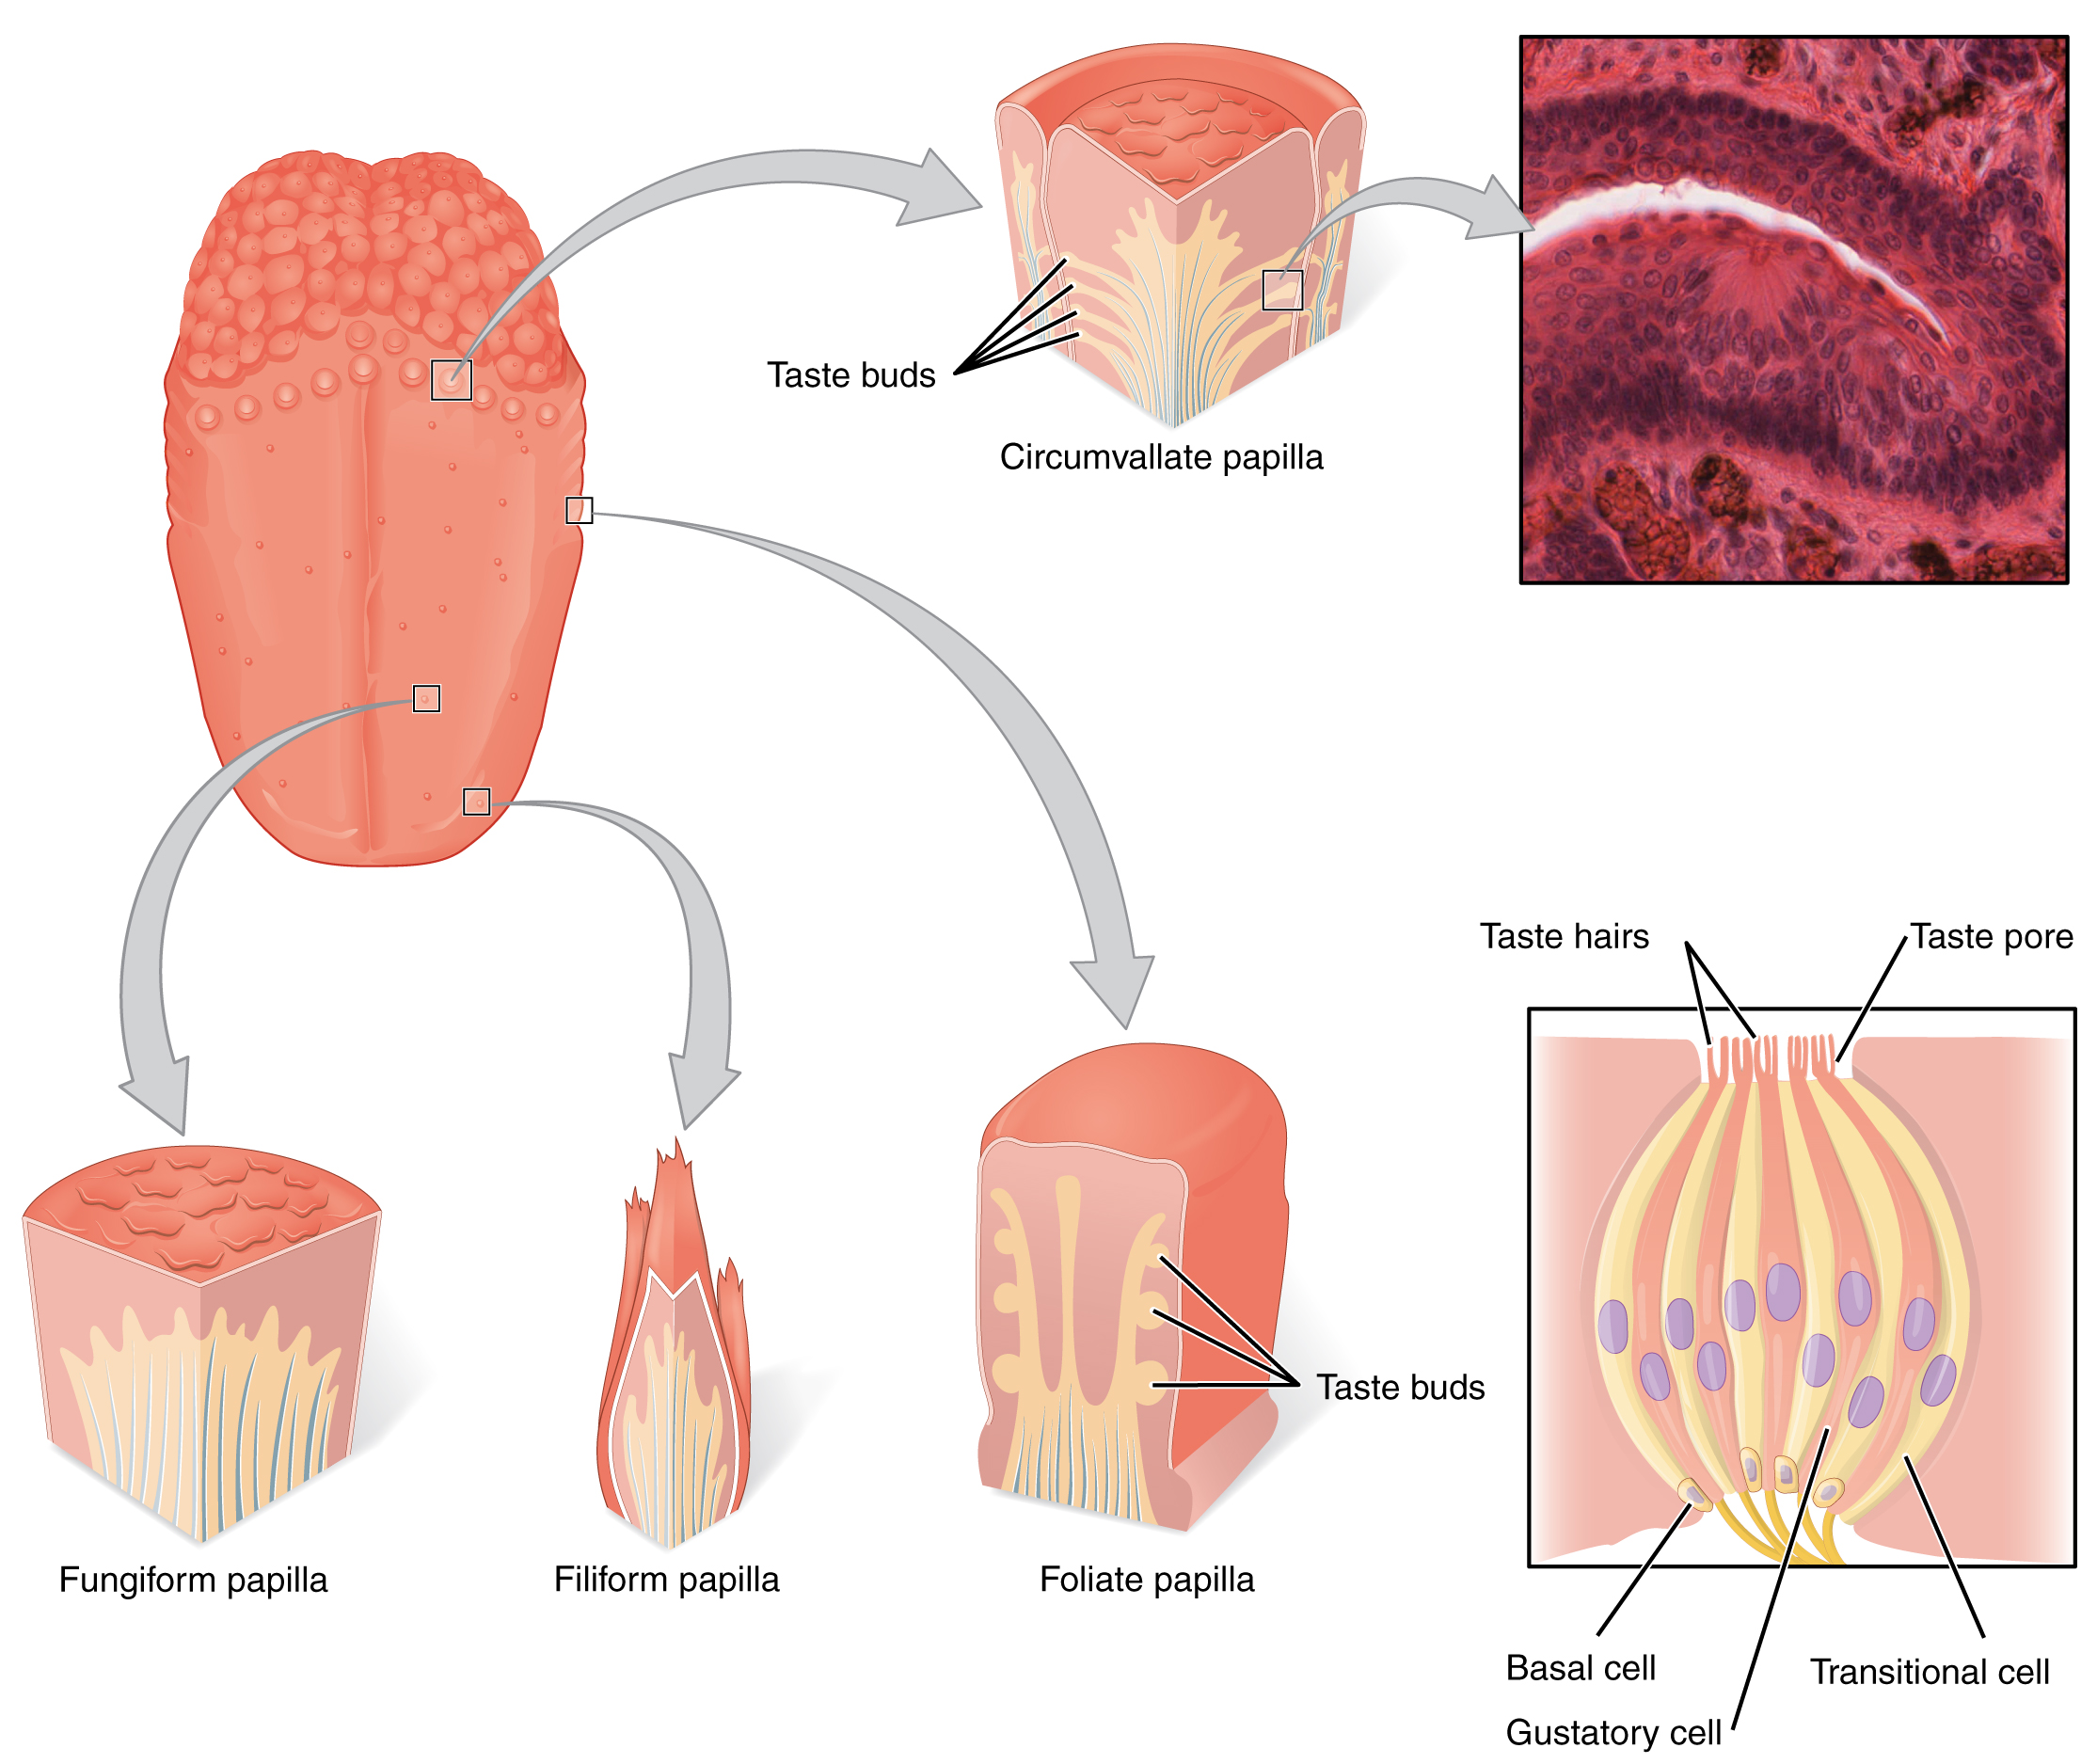 The left panel shows the image of a tongue with callouts that show magnified views of different parts of the tongue. The top right panel shows a micrograph of the circumvallate papilla, and the bottom right panel shows the structure of a taste bud.